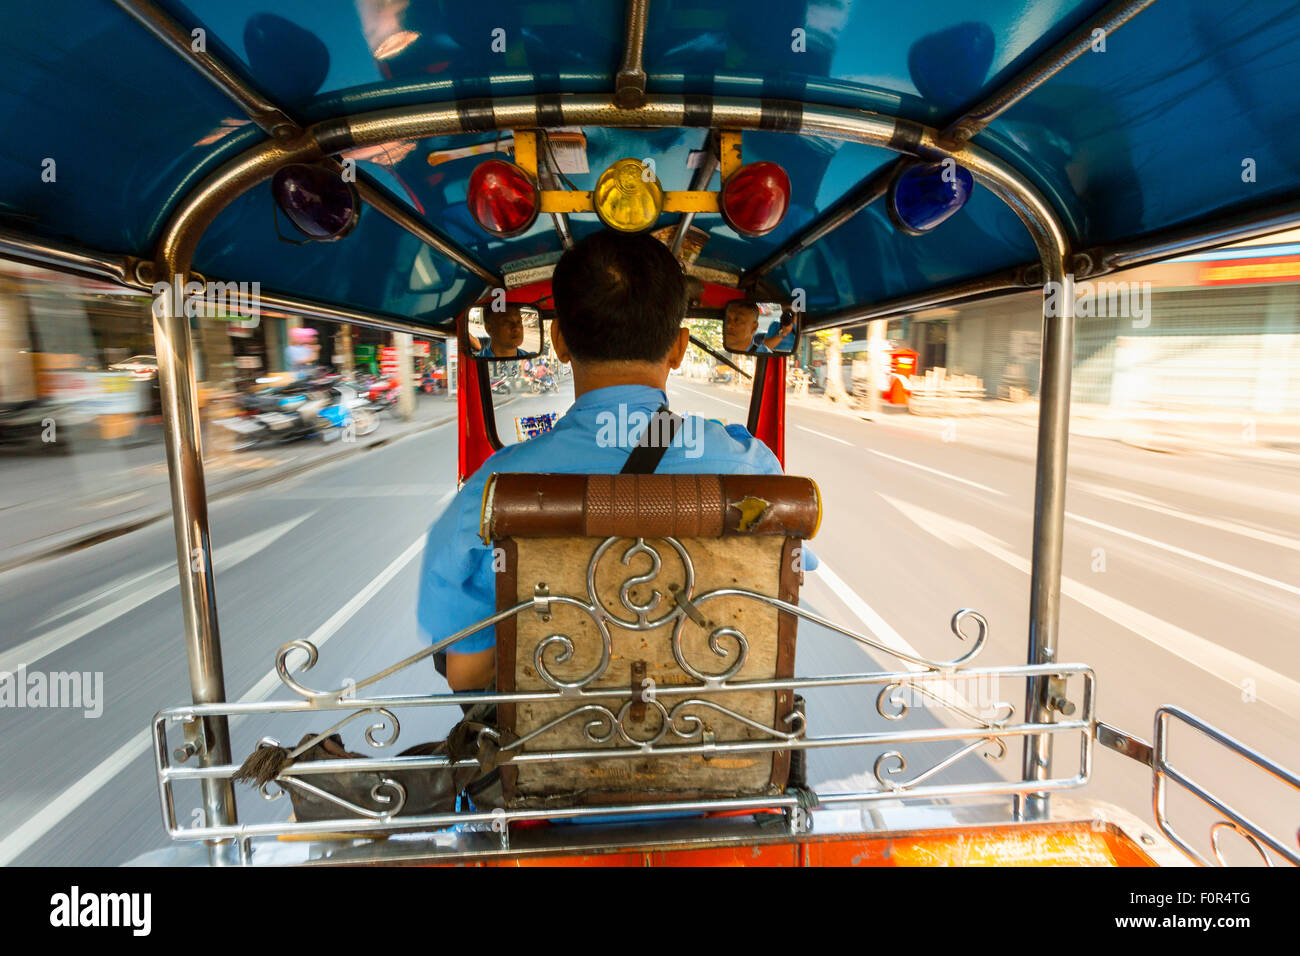 Thaïlande, Bangkok, tuk tuk taxi Photo Stock